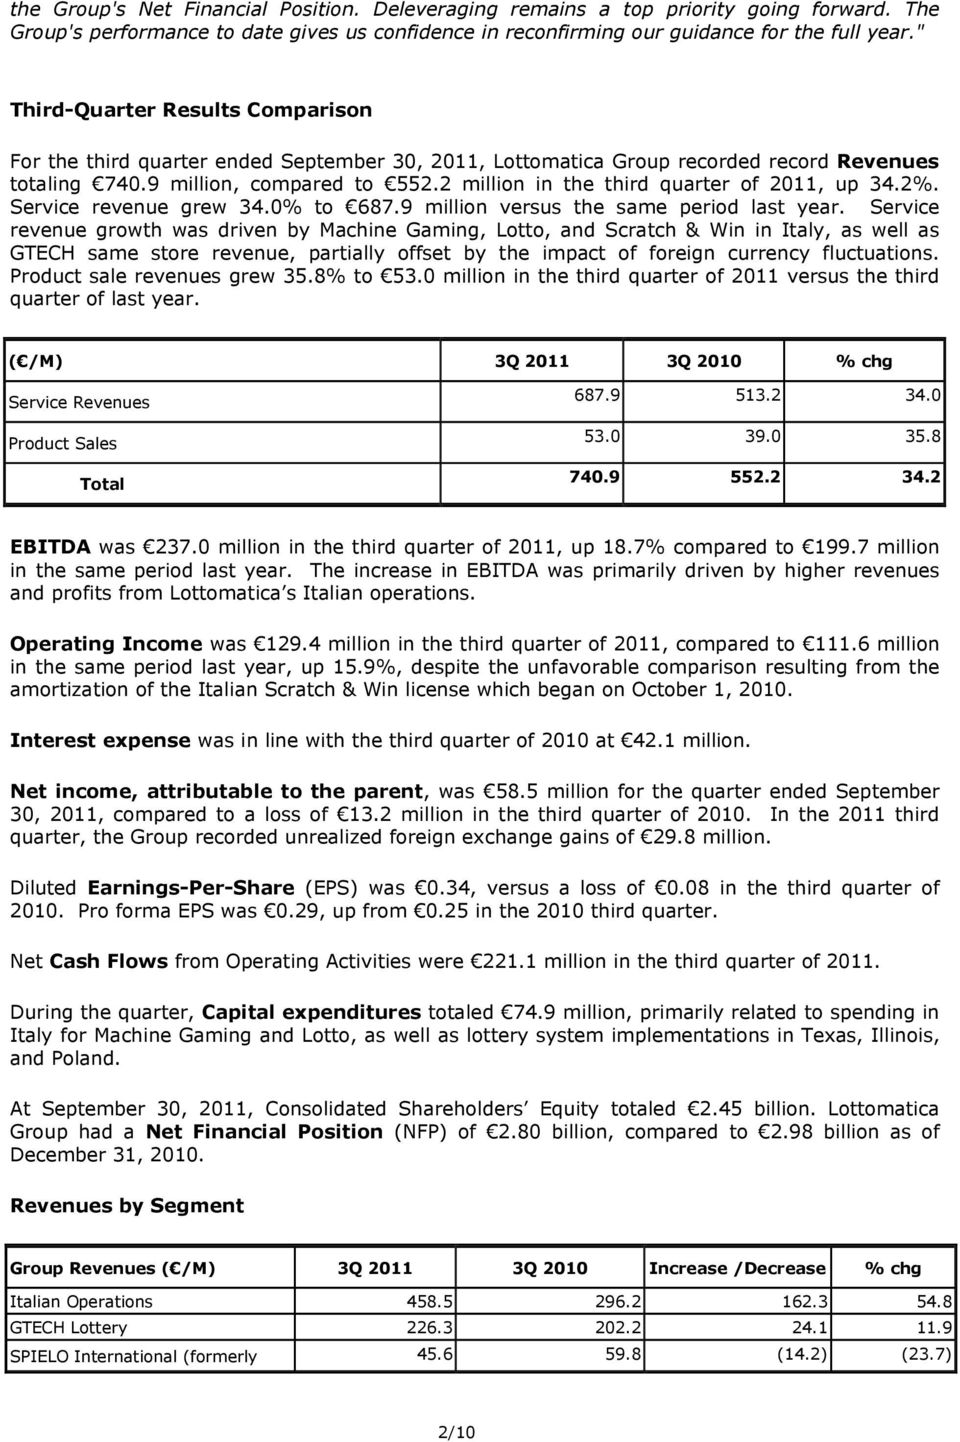 2 million in the third quarter of 2011, up 34.2%. Service revenue grew 34.0% to 687.9 million versus the same period last year.